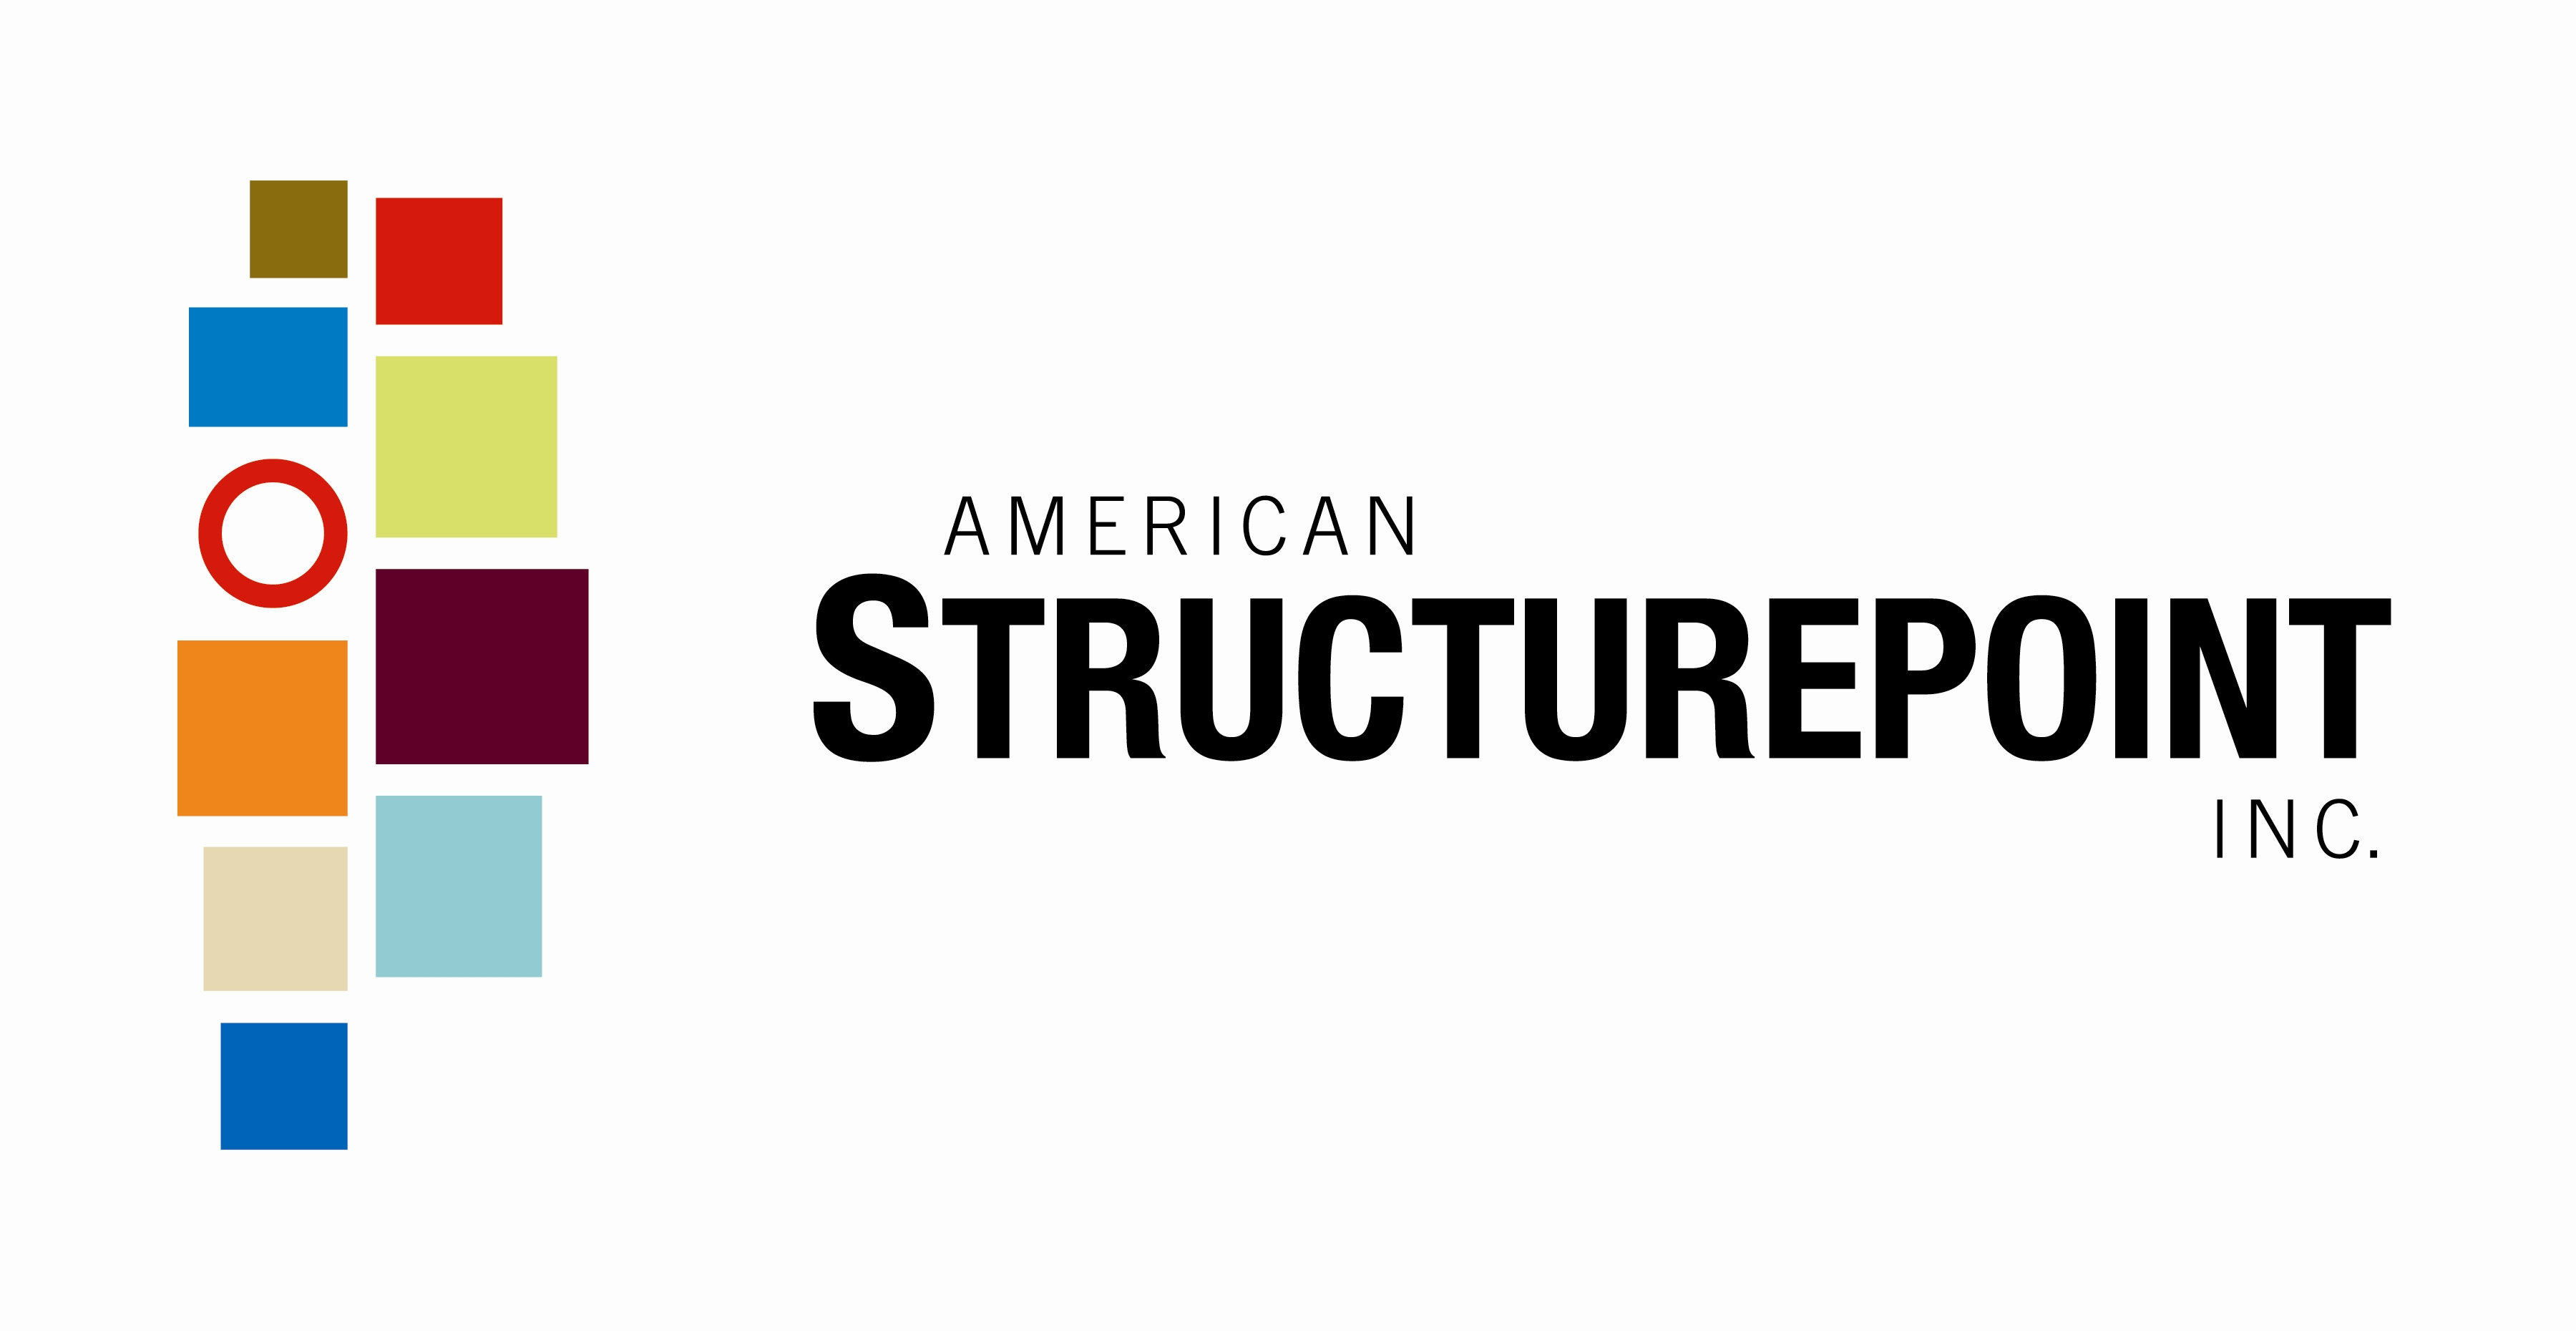 American Structurepoint